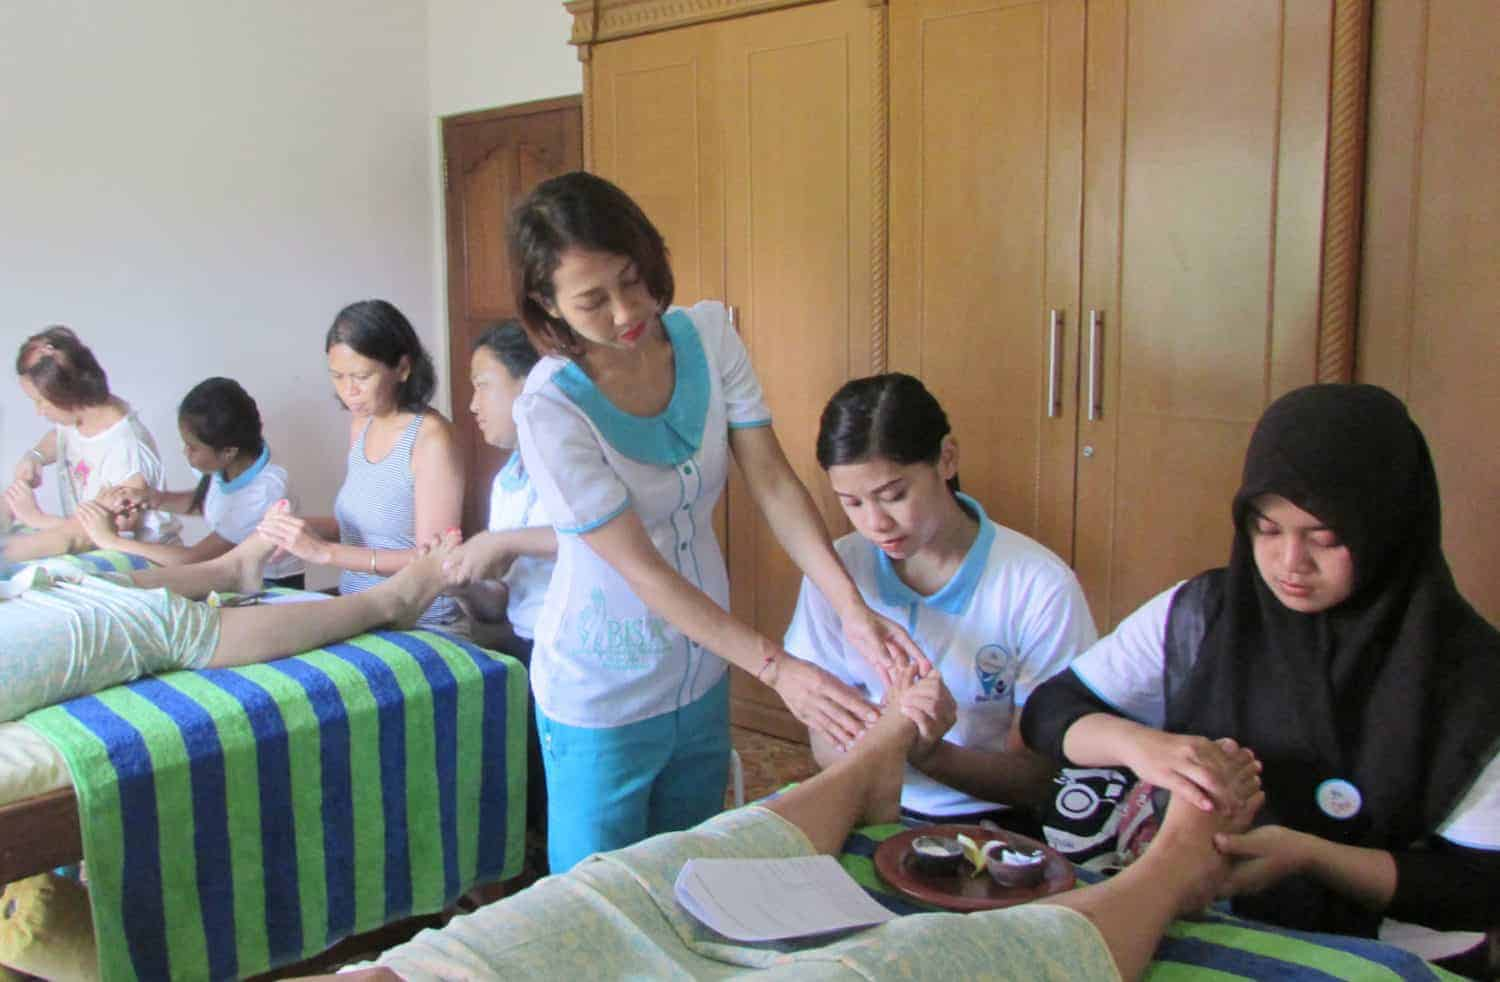 The Bali International Spa Academy, or BISA, is the ITEC Bali authorized training centre for spa, complementary therapies and beauty education